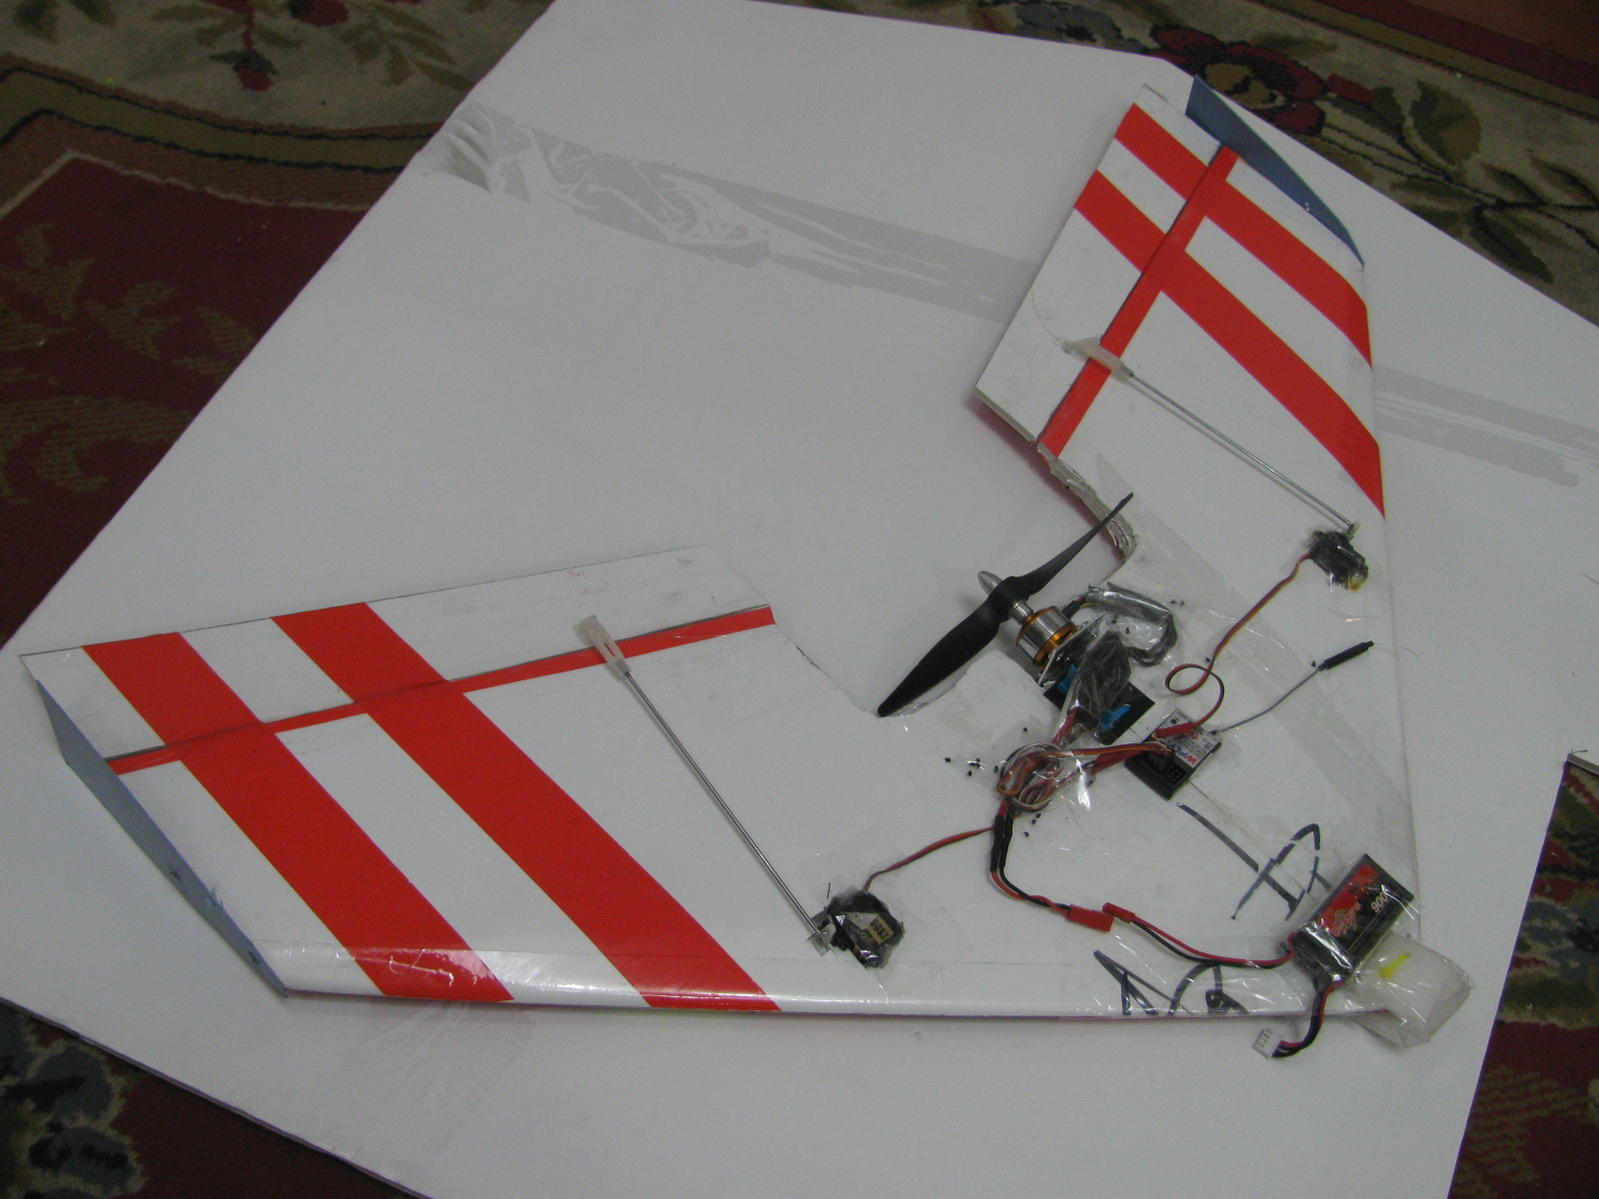 rc Boneyard Wing made from foam with laminate to strengthen middle section